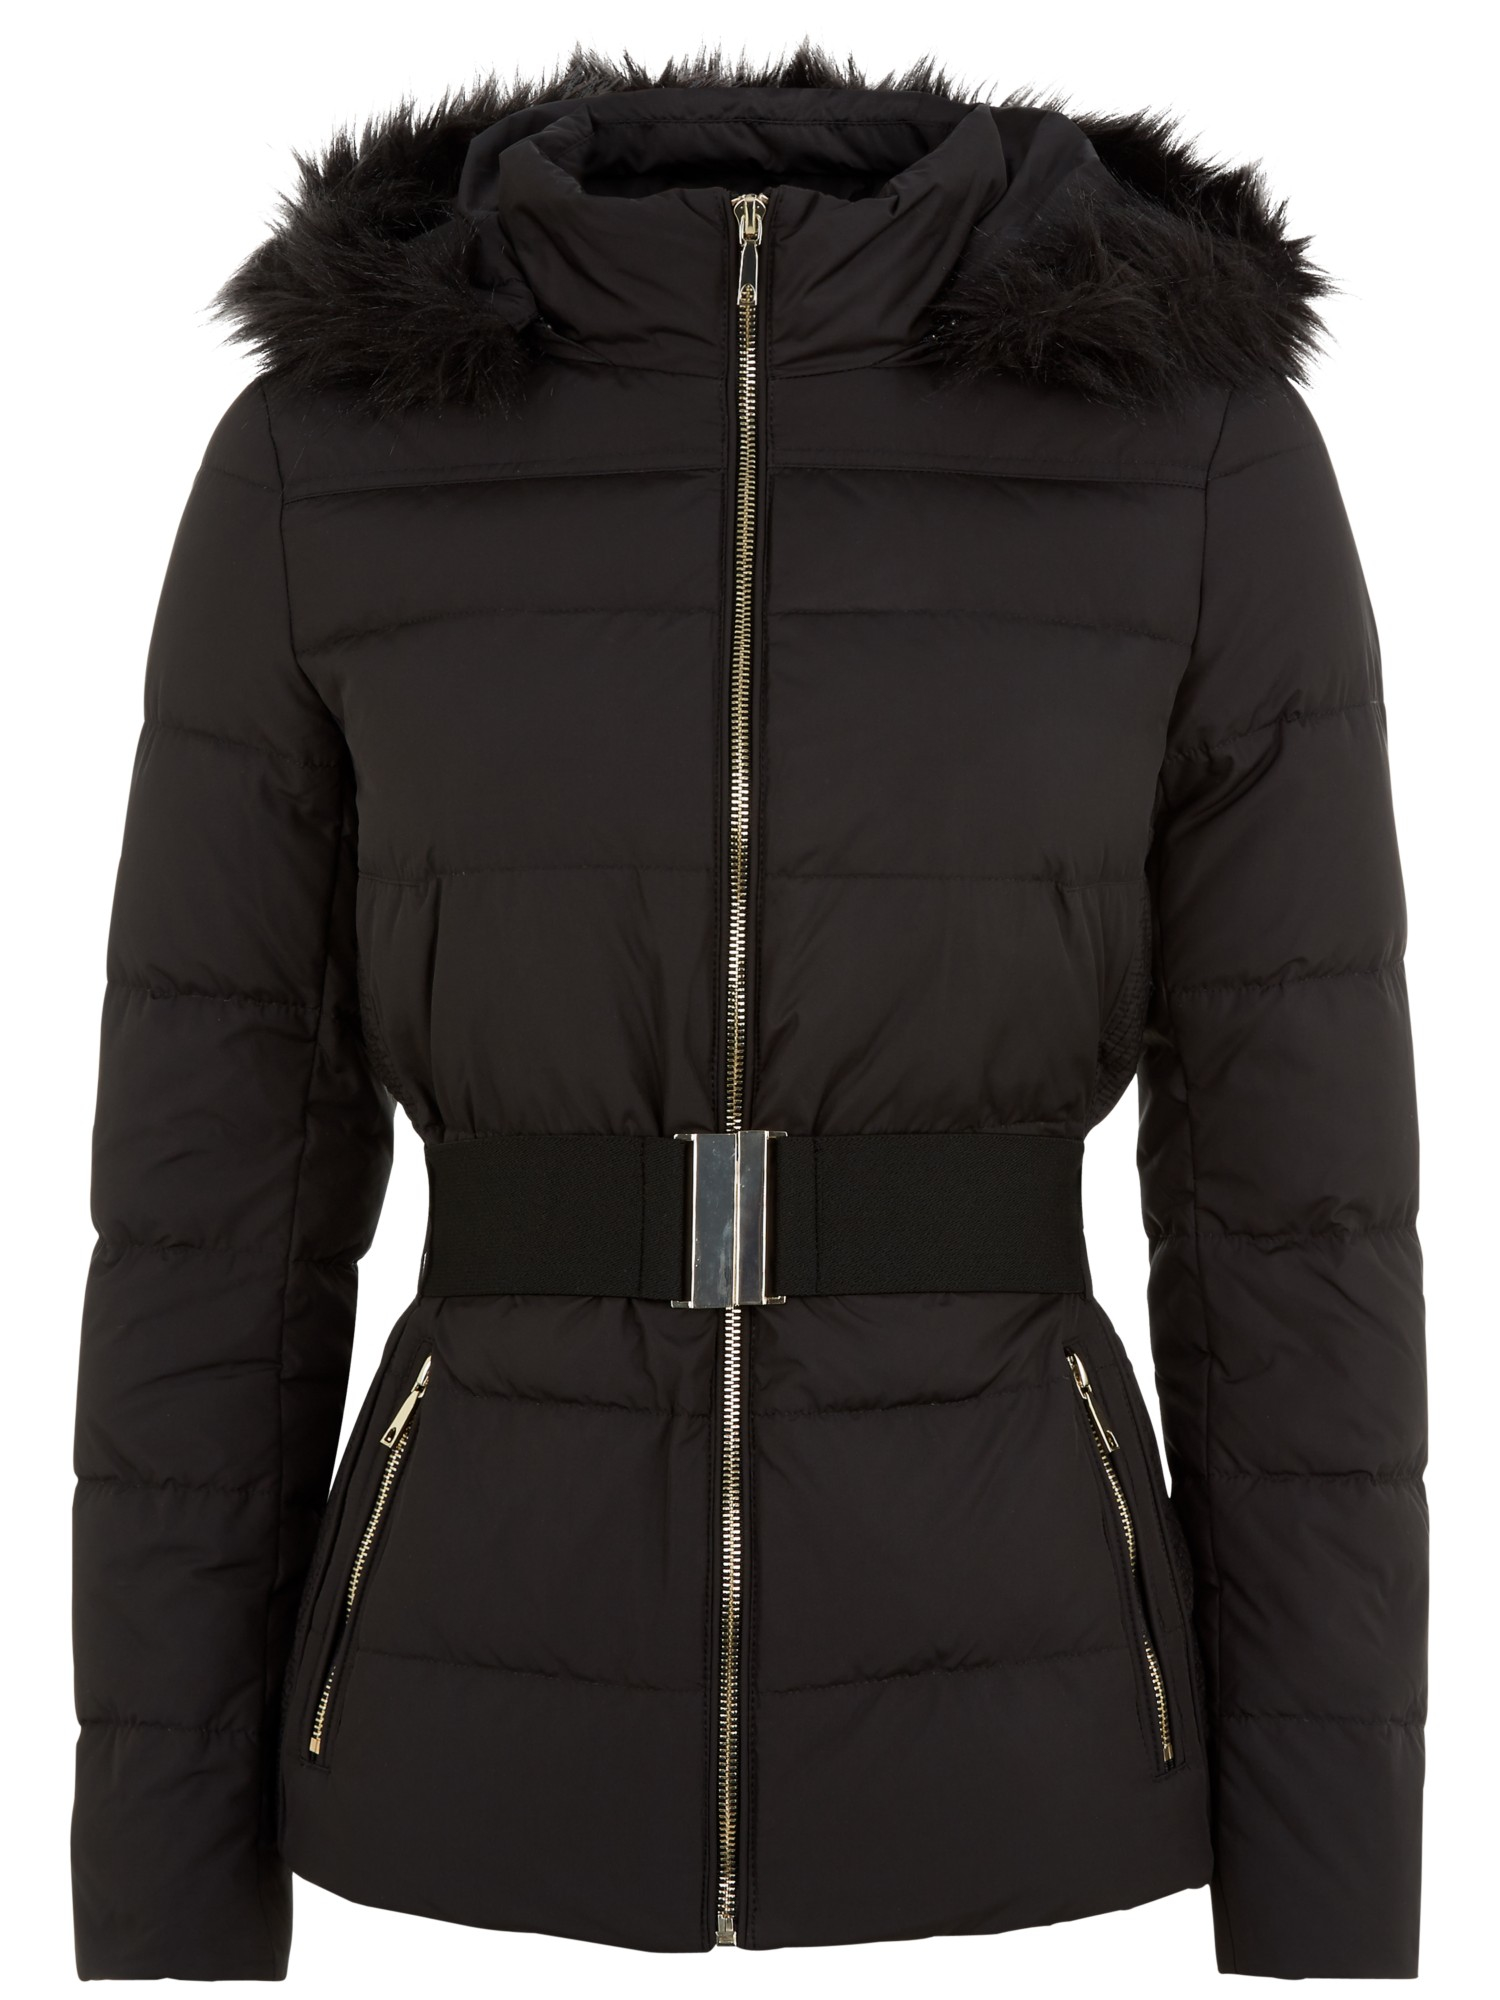 Find great deals on eBay for quilted belted jacket. Shop with confidence.